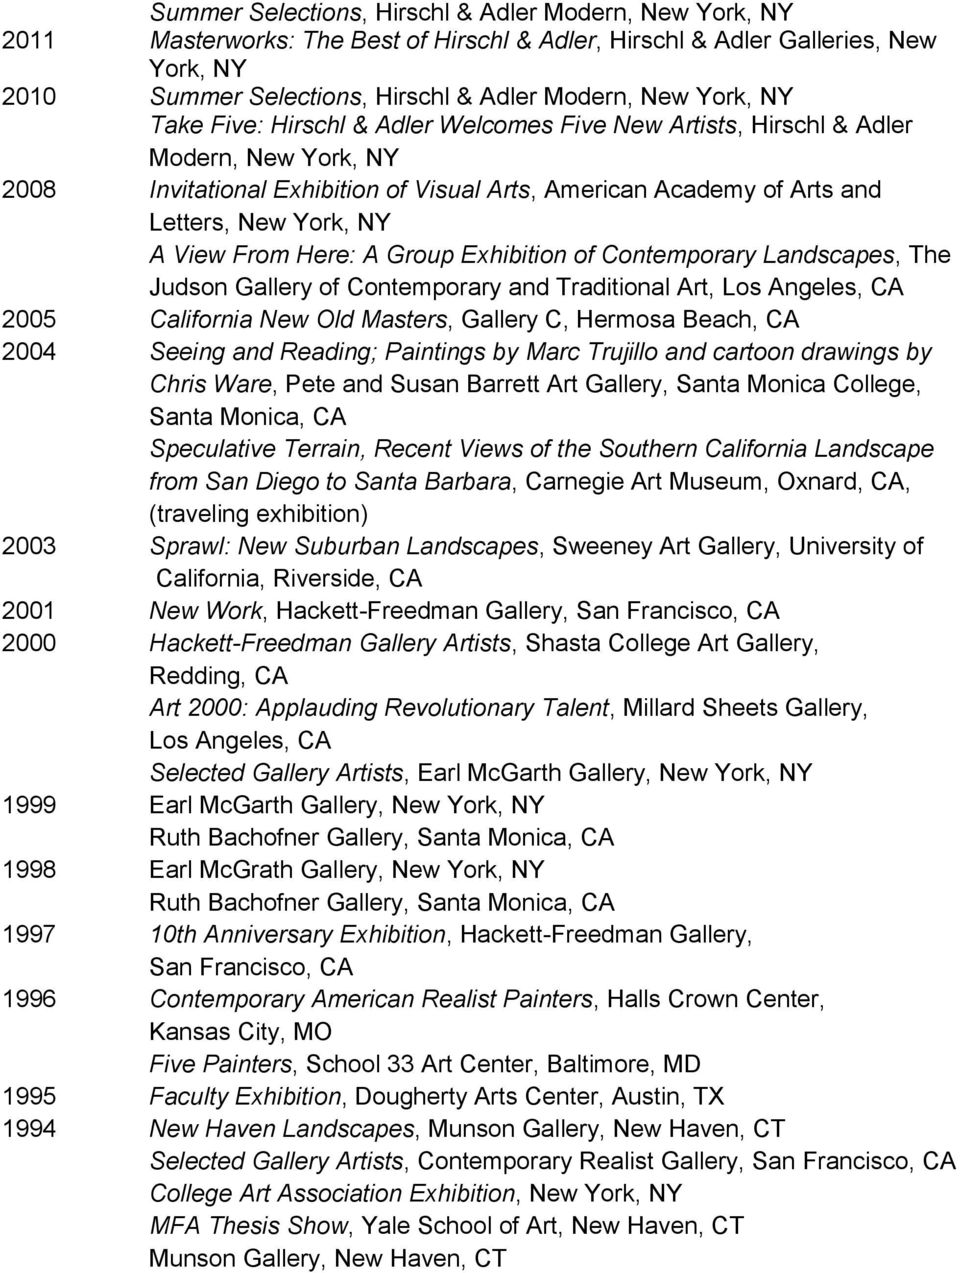 View From Here: A Group Exhibition of Contemporary Landscapes, The Judson Gallery of Contemporary and Traditional Art, Los Angeles, CA 2005 California New Old Masters, Gallery C, Hermosa Beach, CA